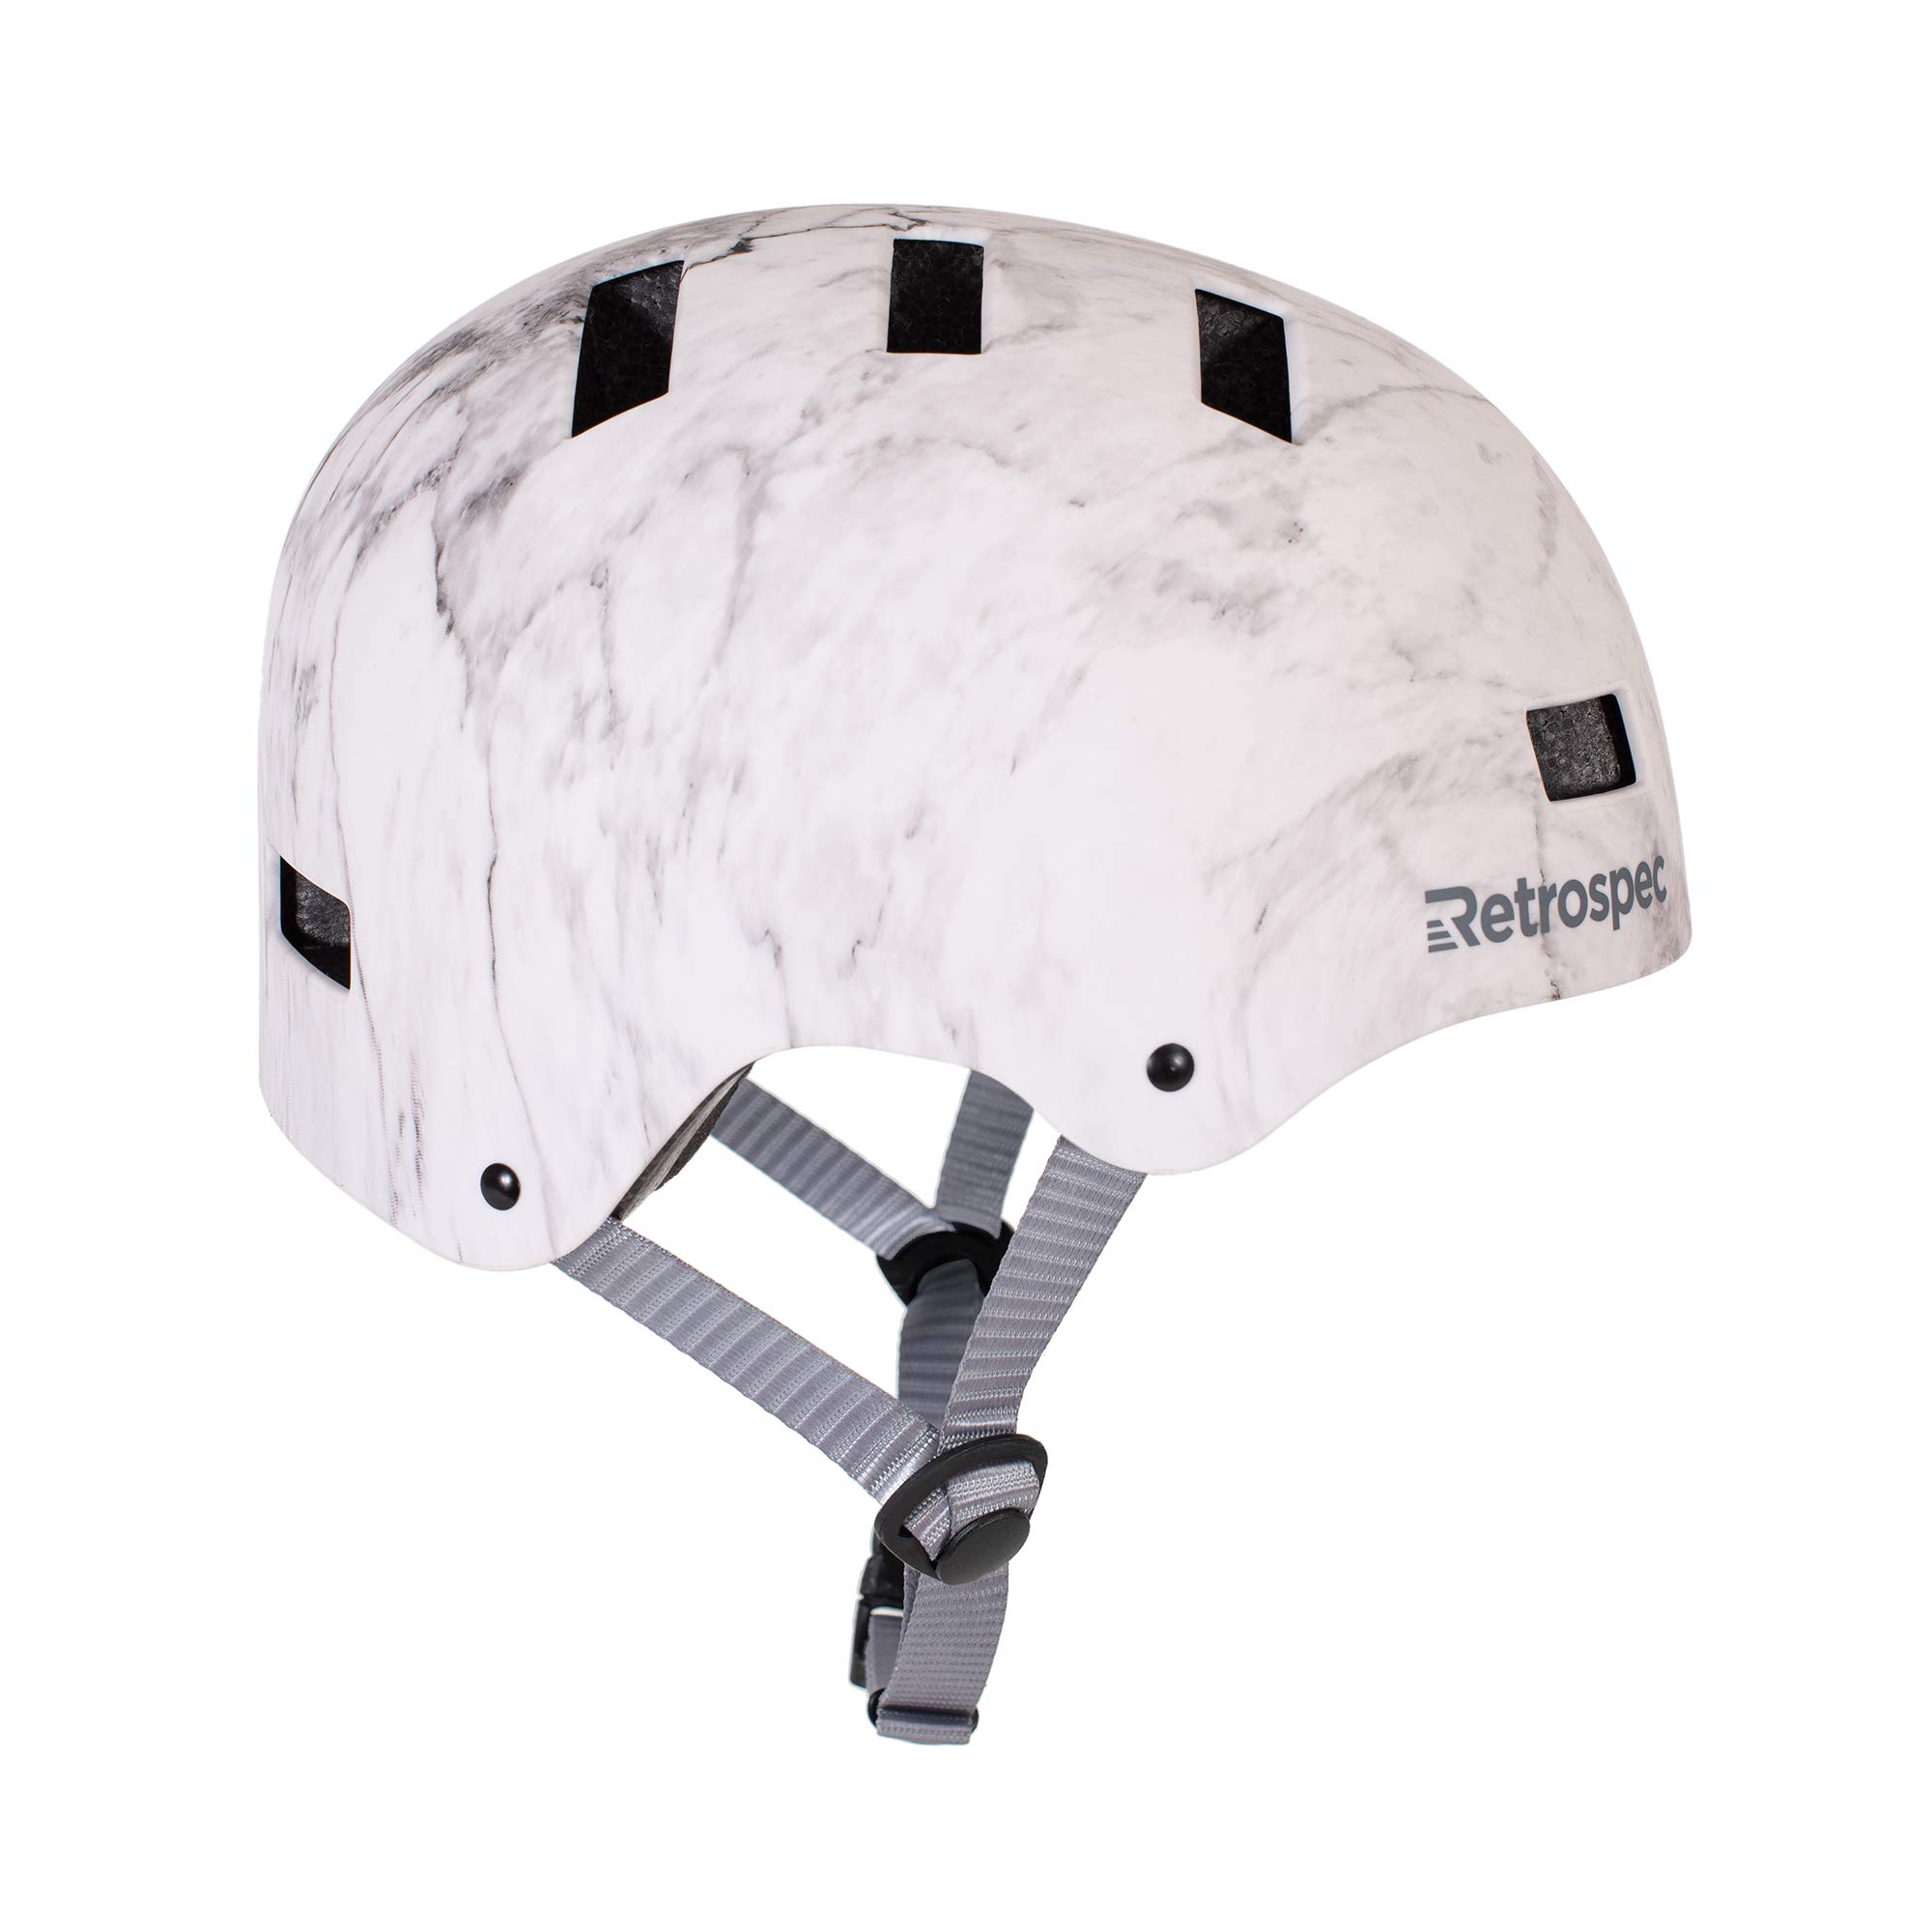 Retrospec CM-1 Bicycle / Skateboard Helmet for Adult CPSC Certified Commuter, Bike, Skate, Matte Marble, Small: 51-55 cm / 20''-21.75''